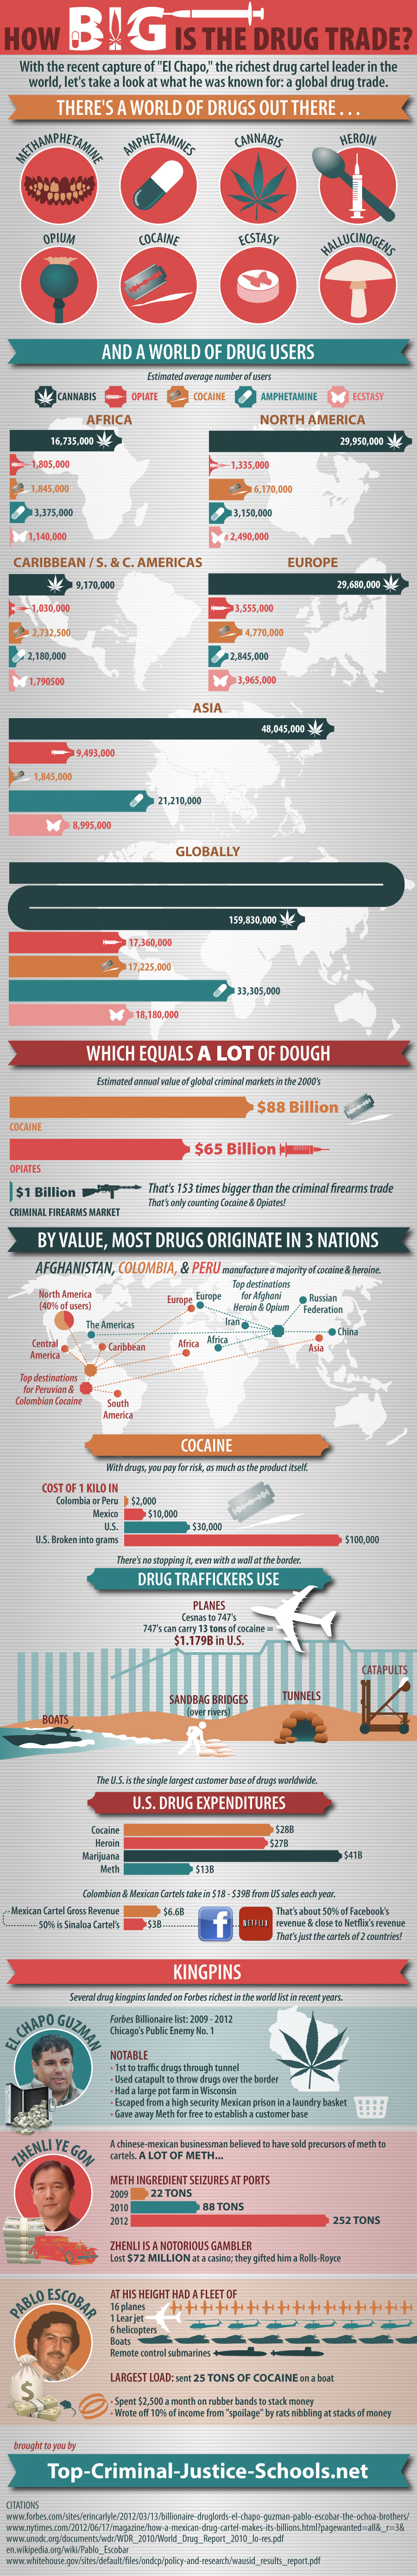 How big is drug trade